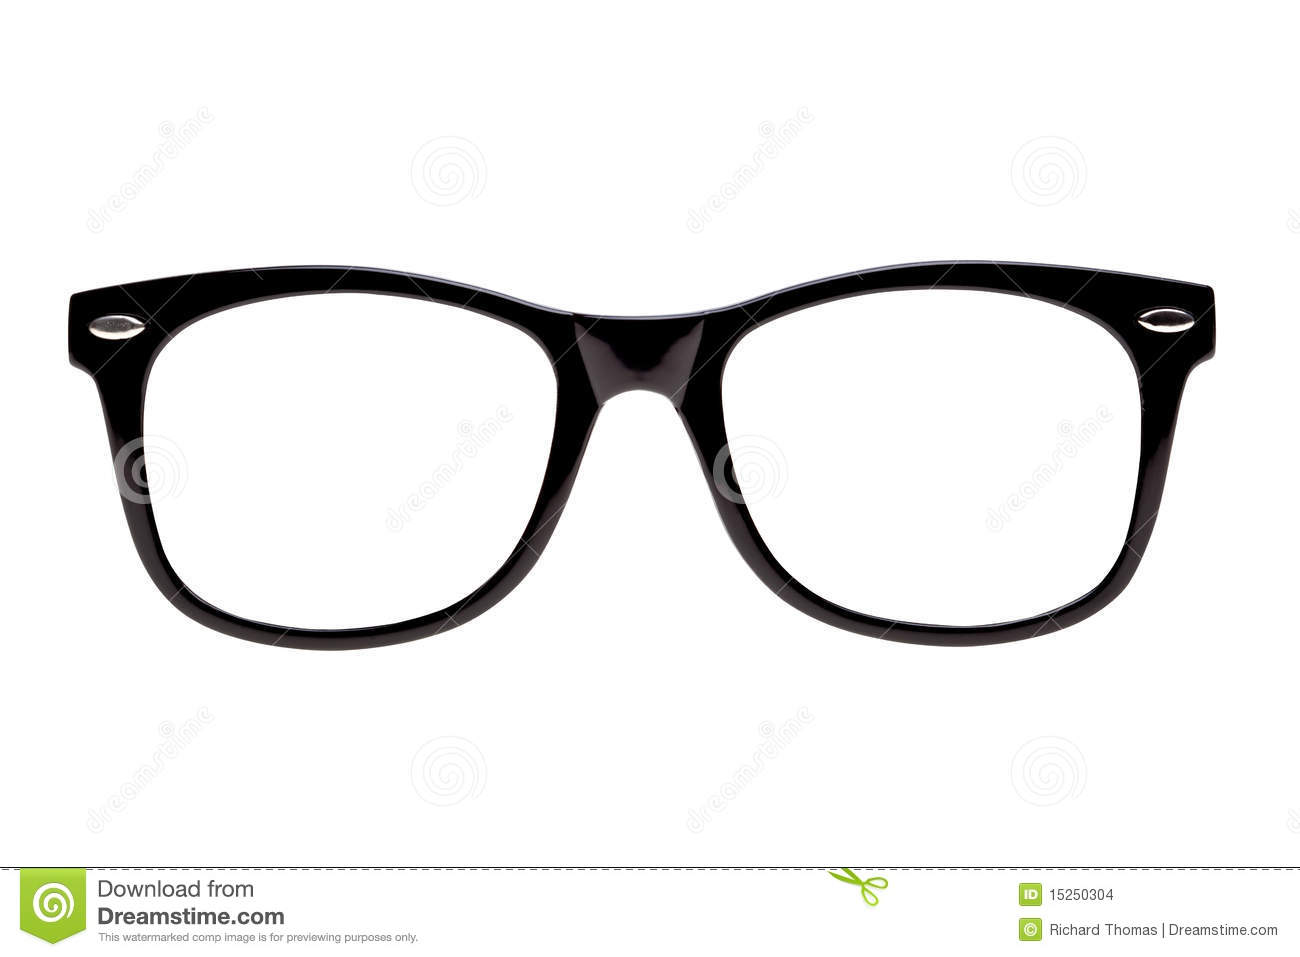 438f13b253 Photo Black Nerd Spectacle Frames Stock Photo - Image of retro ...